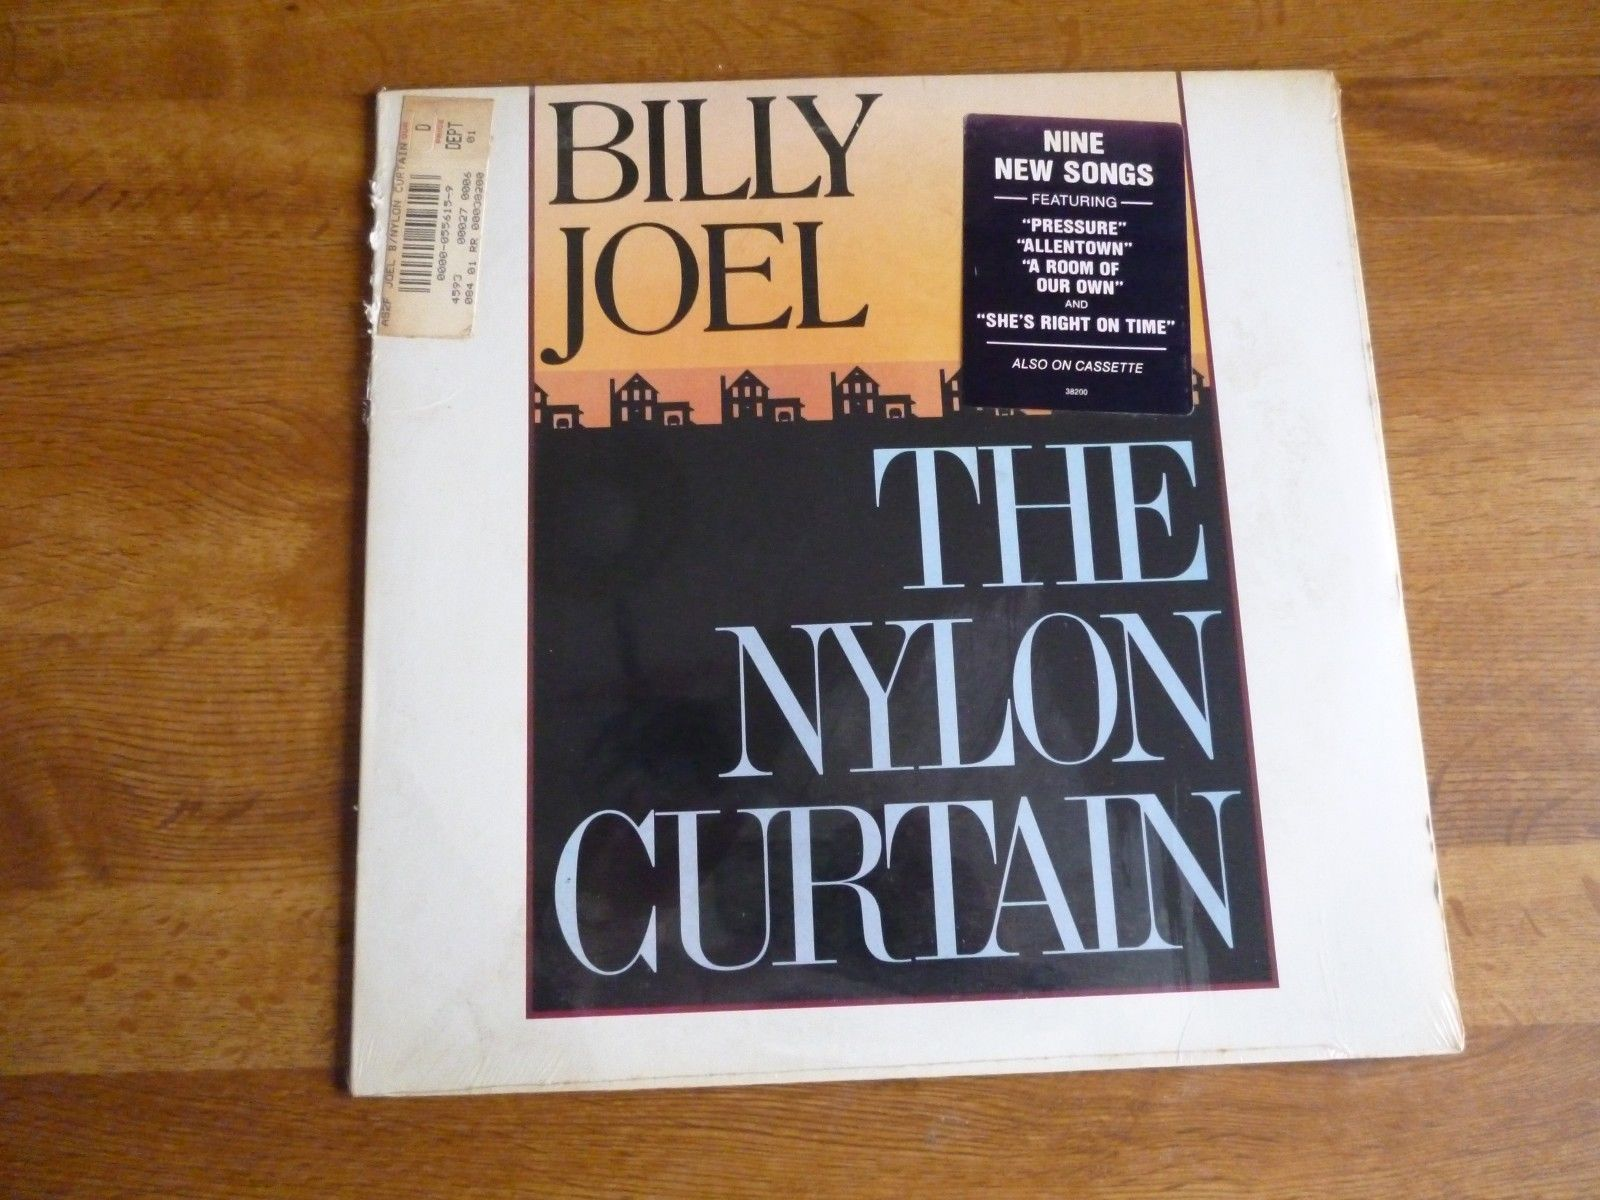 Billy Joel - The Nylon Curtain LP - Columbia Records QC 38200 - still sealed https://t.co/6EkKMgfSv9 https://t.co/sWEqAN9mWq